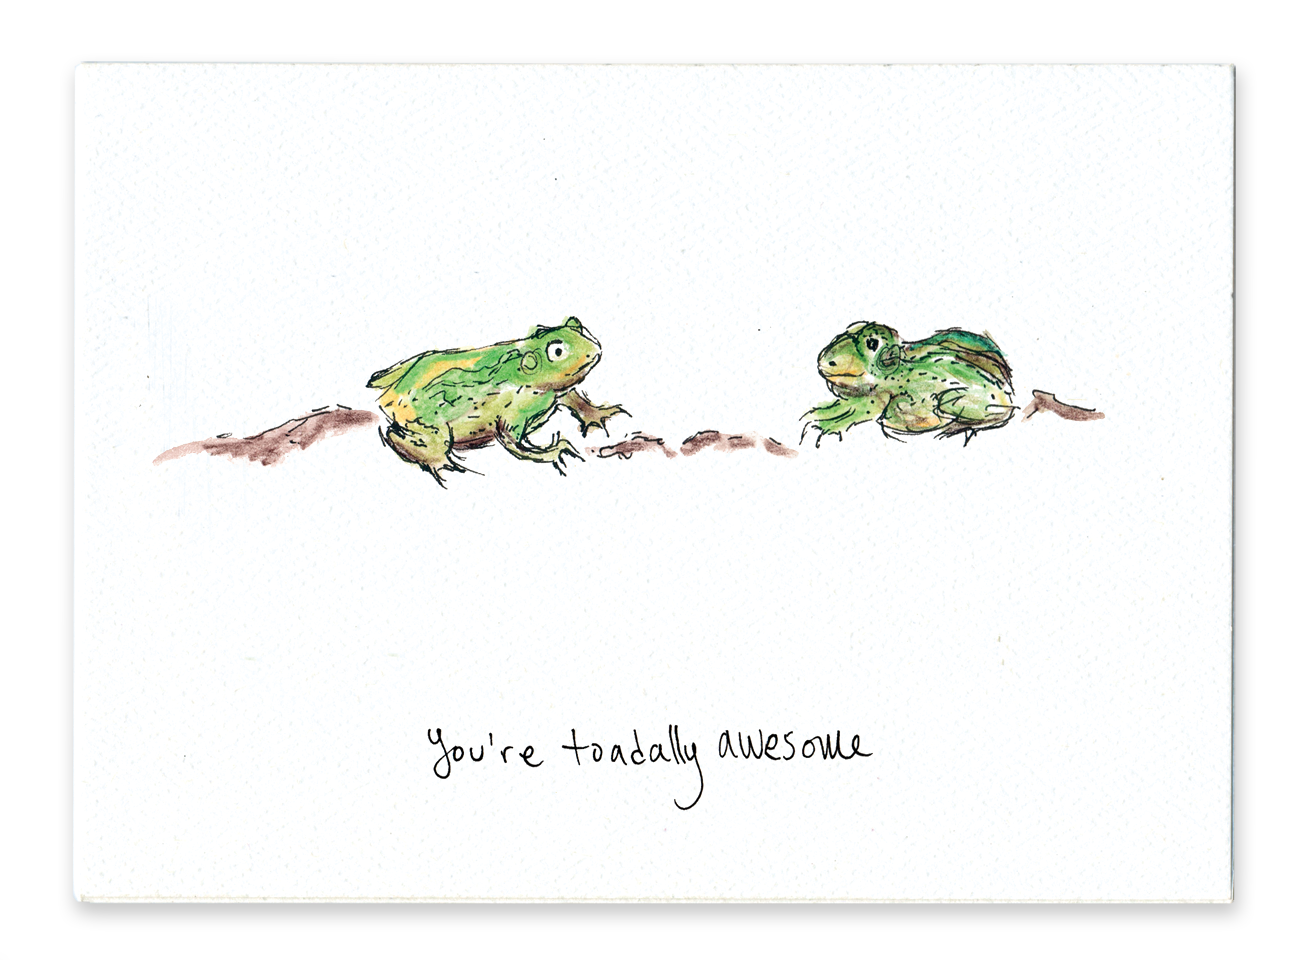 You're Toadally Awesome